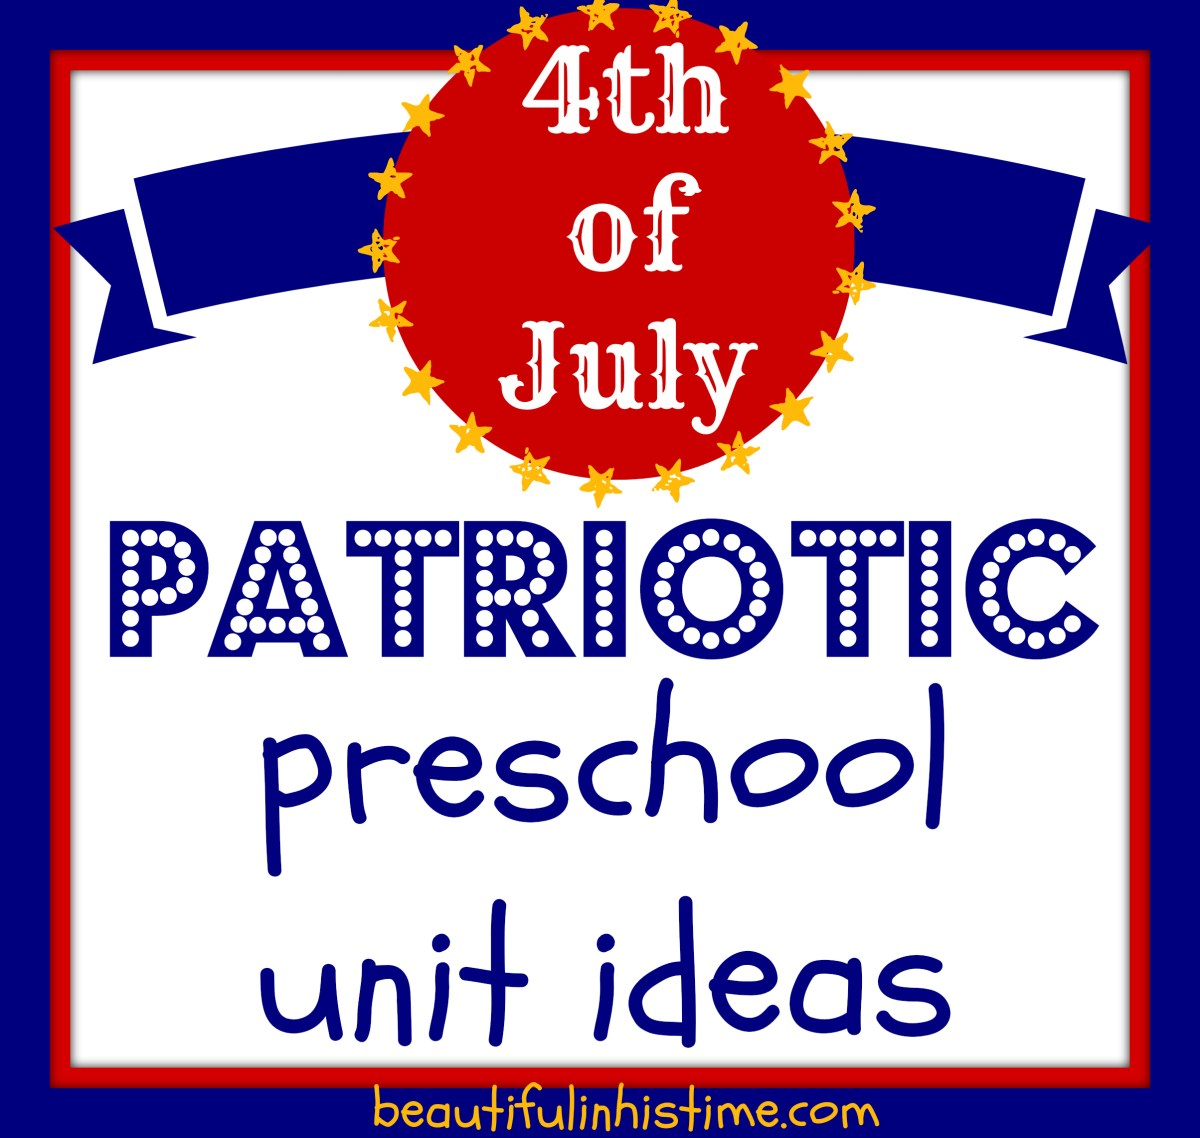 Patriotic Preschool Unit Ideas and Resources for the 4th of July!